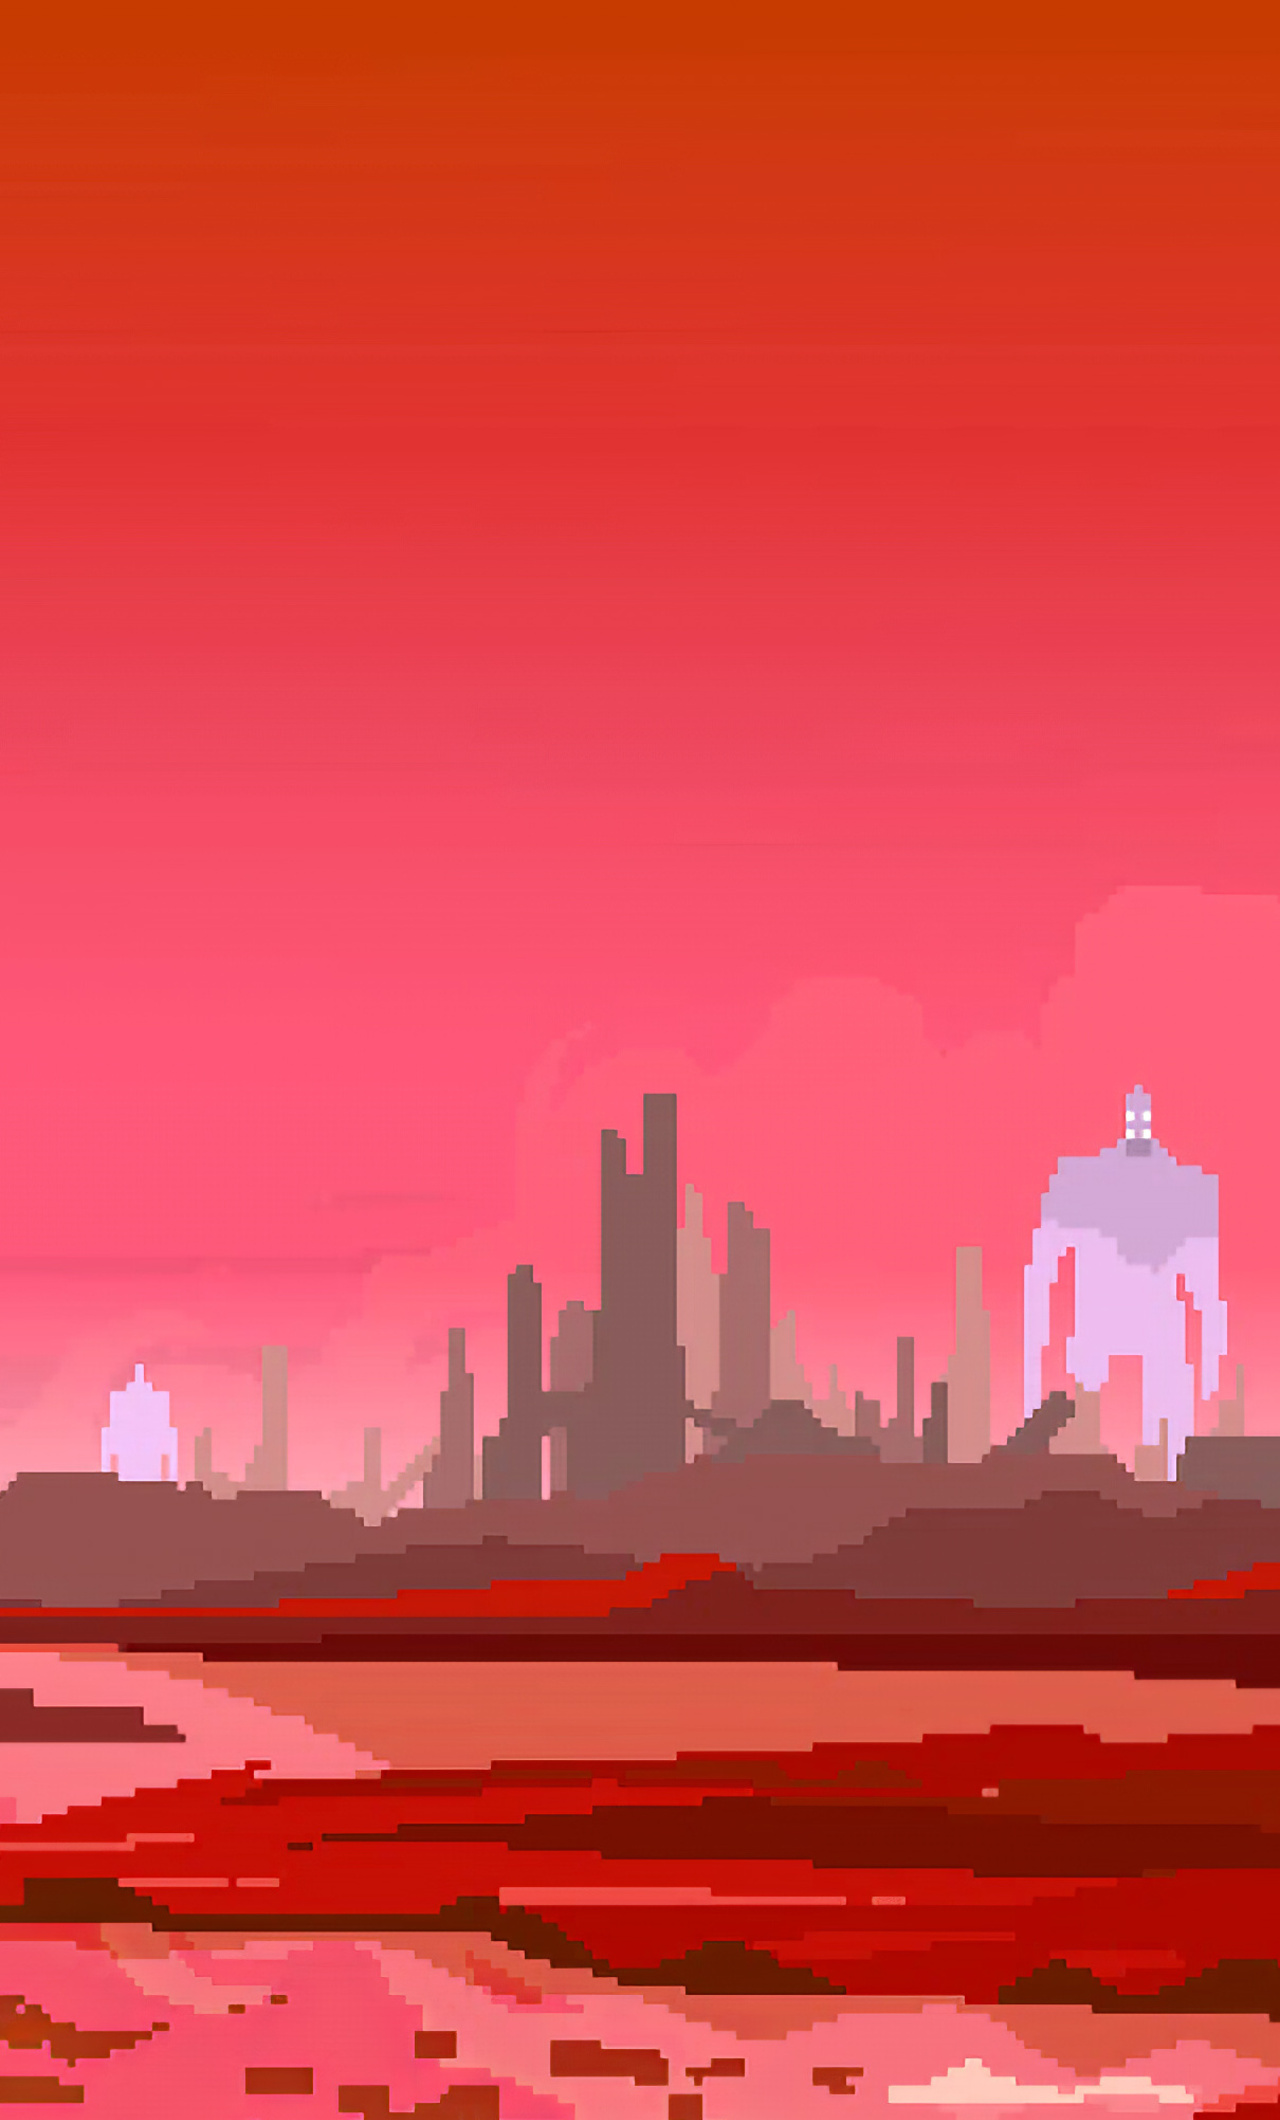 1280x2120 Hyper Light Drifter 8bit 4k Iphone 6 Hd 4k Wallpapers